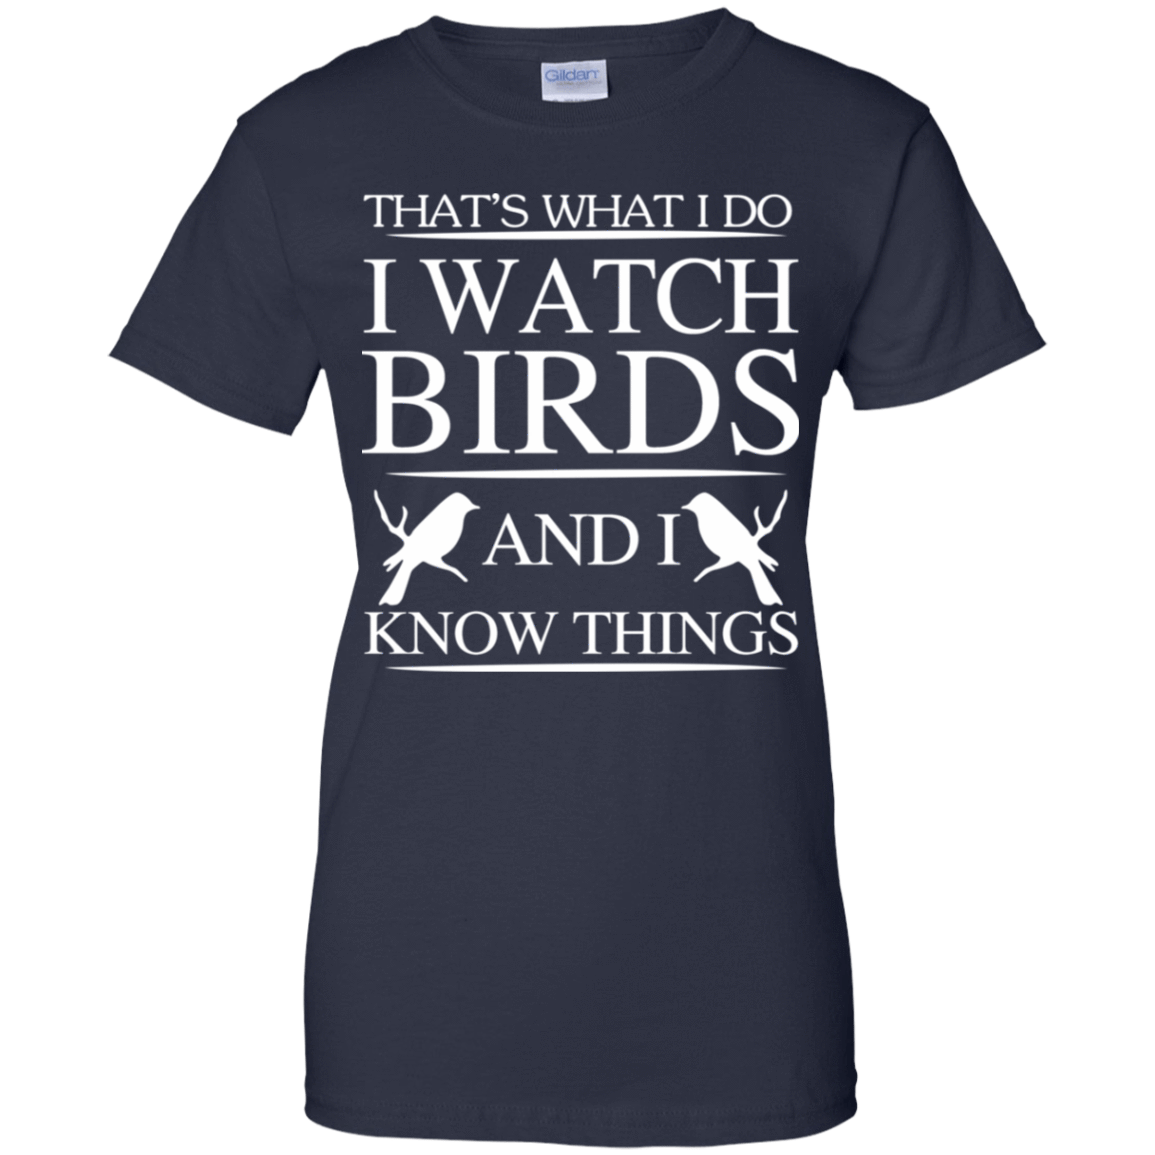 That's What I Do I Watch Birds And I Know Things 939-9259-72789239-44765 - Tee Ript